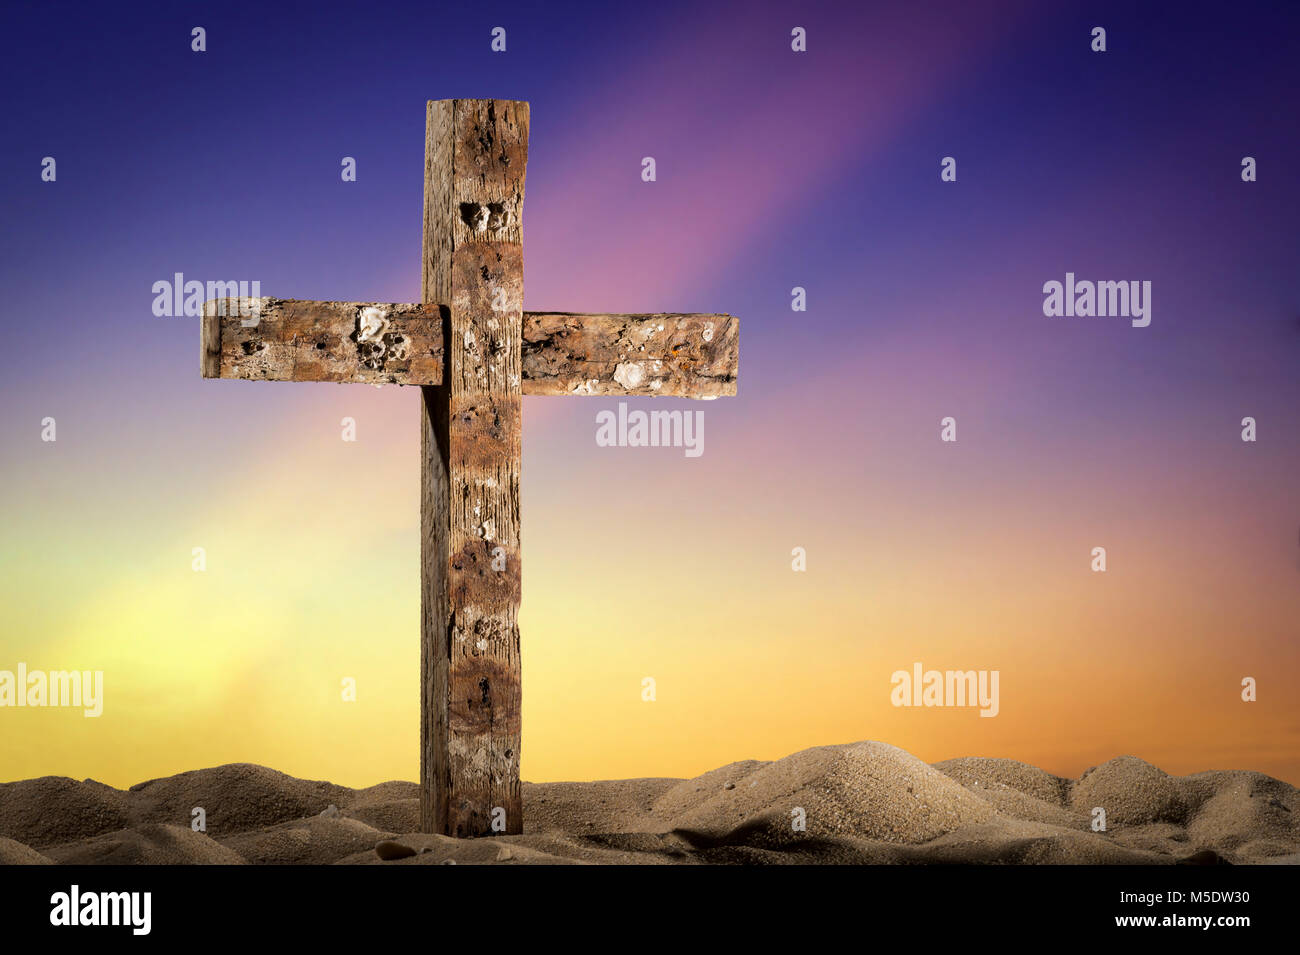 Old Worn Weathered Wooden Cross - Stock Image